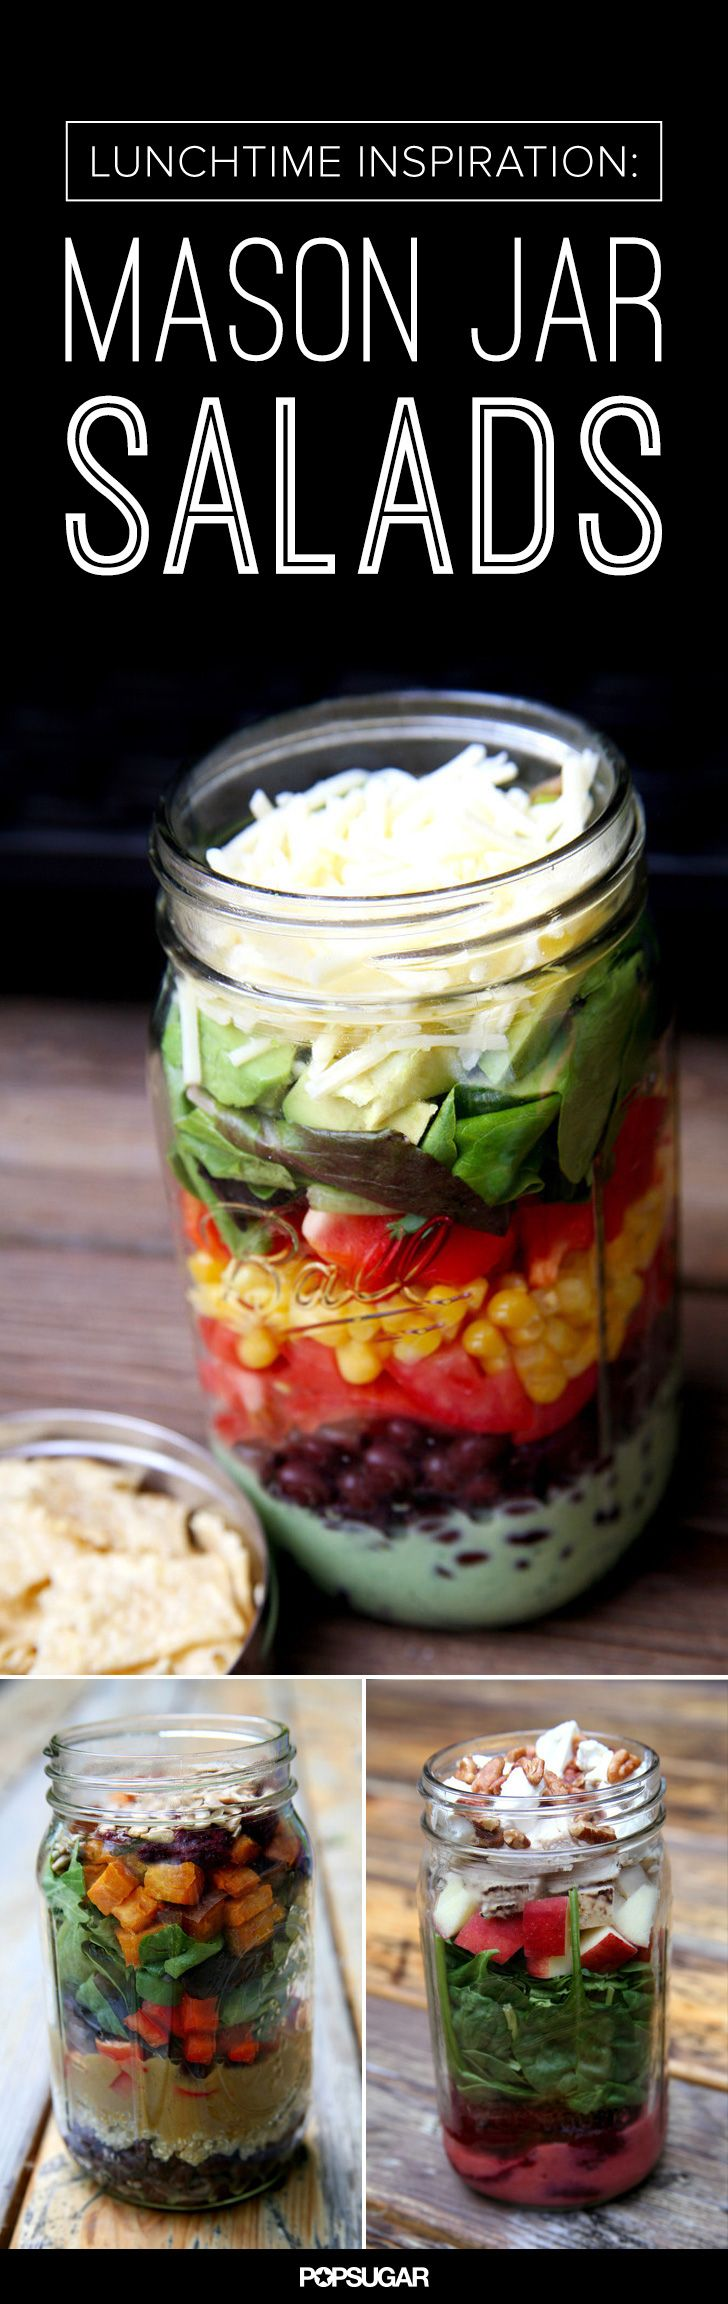 25 Salads in a Jar That Make Brown Bagging Fun LBV